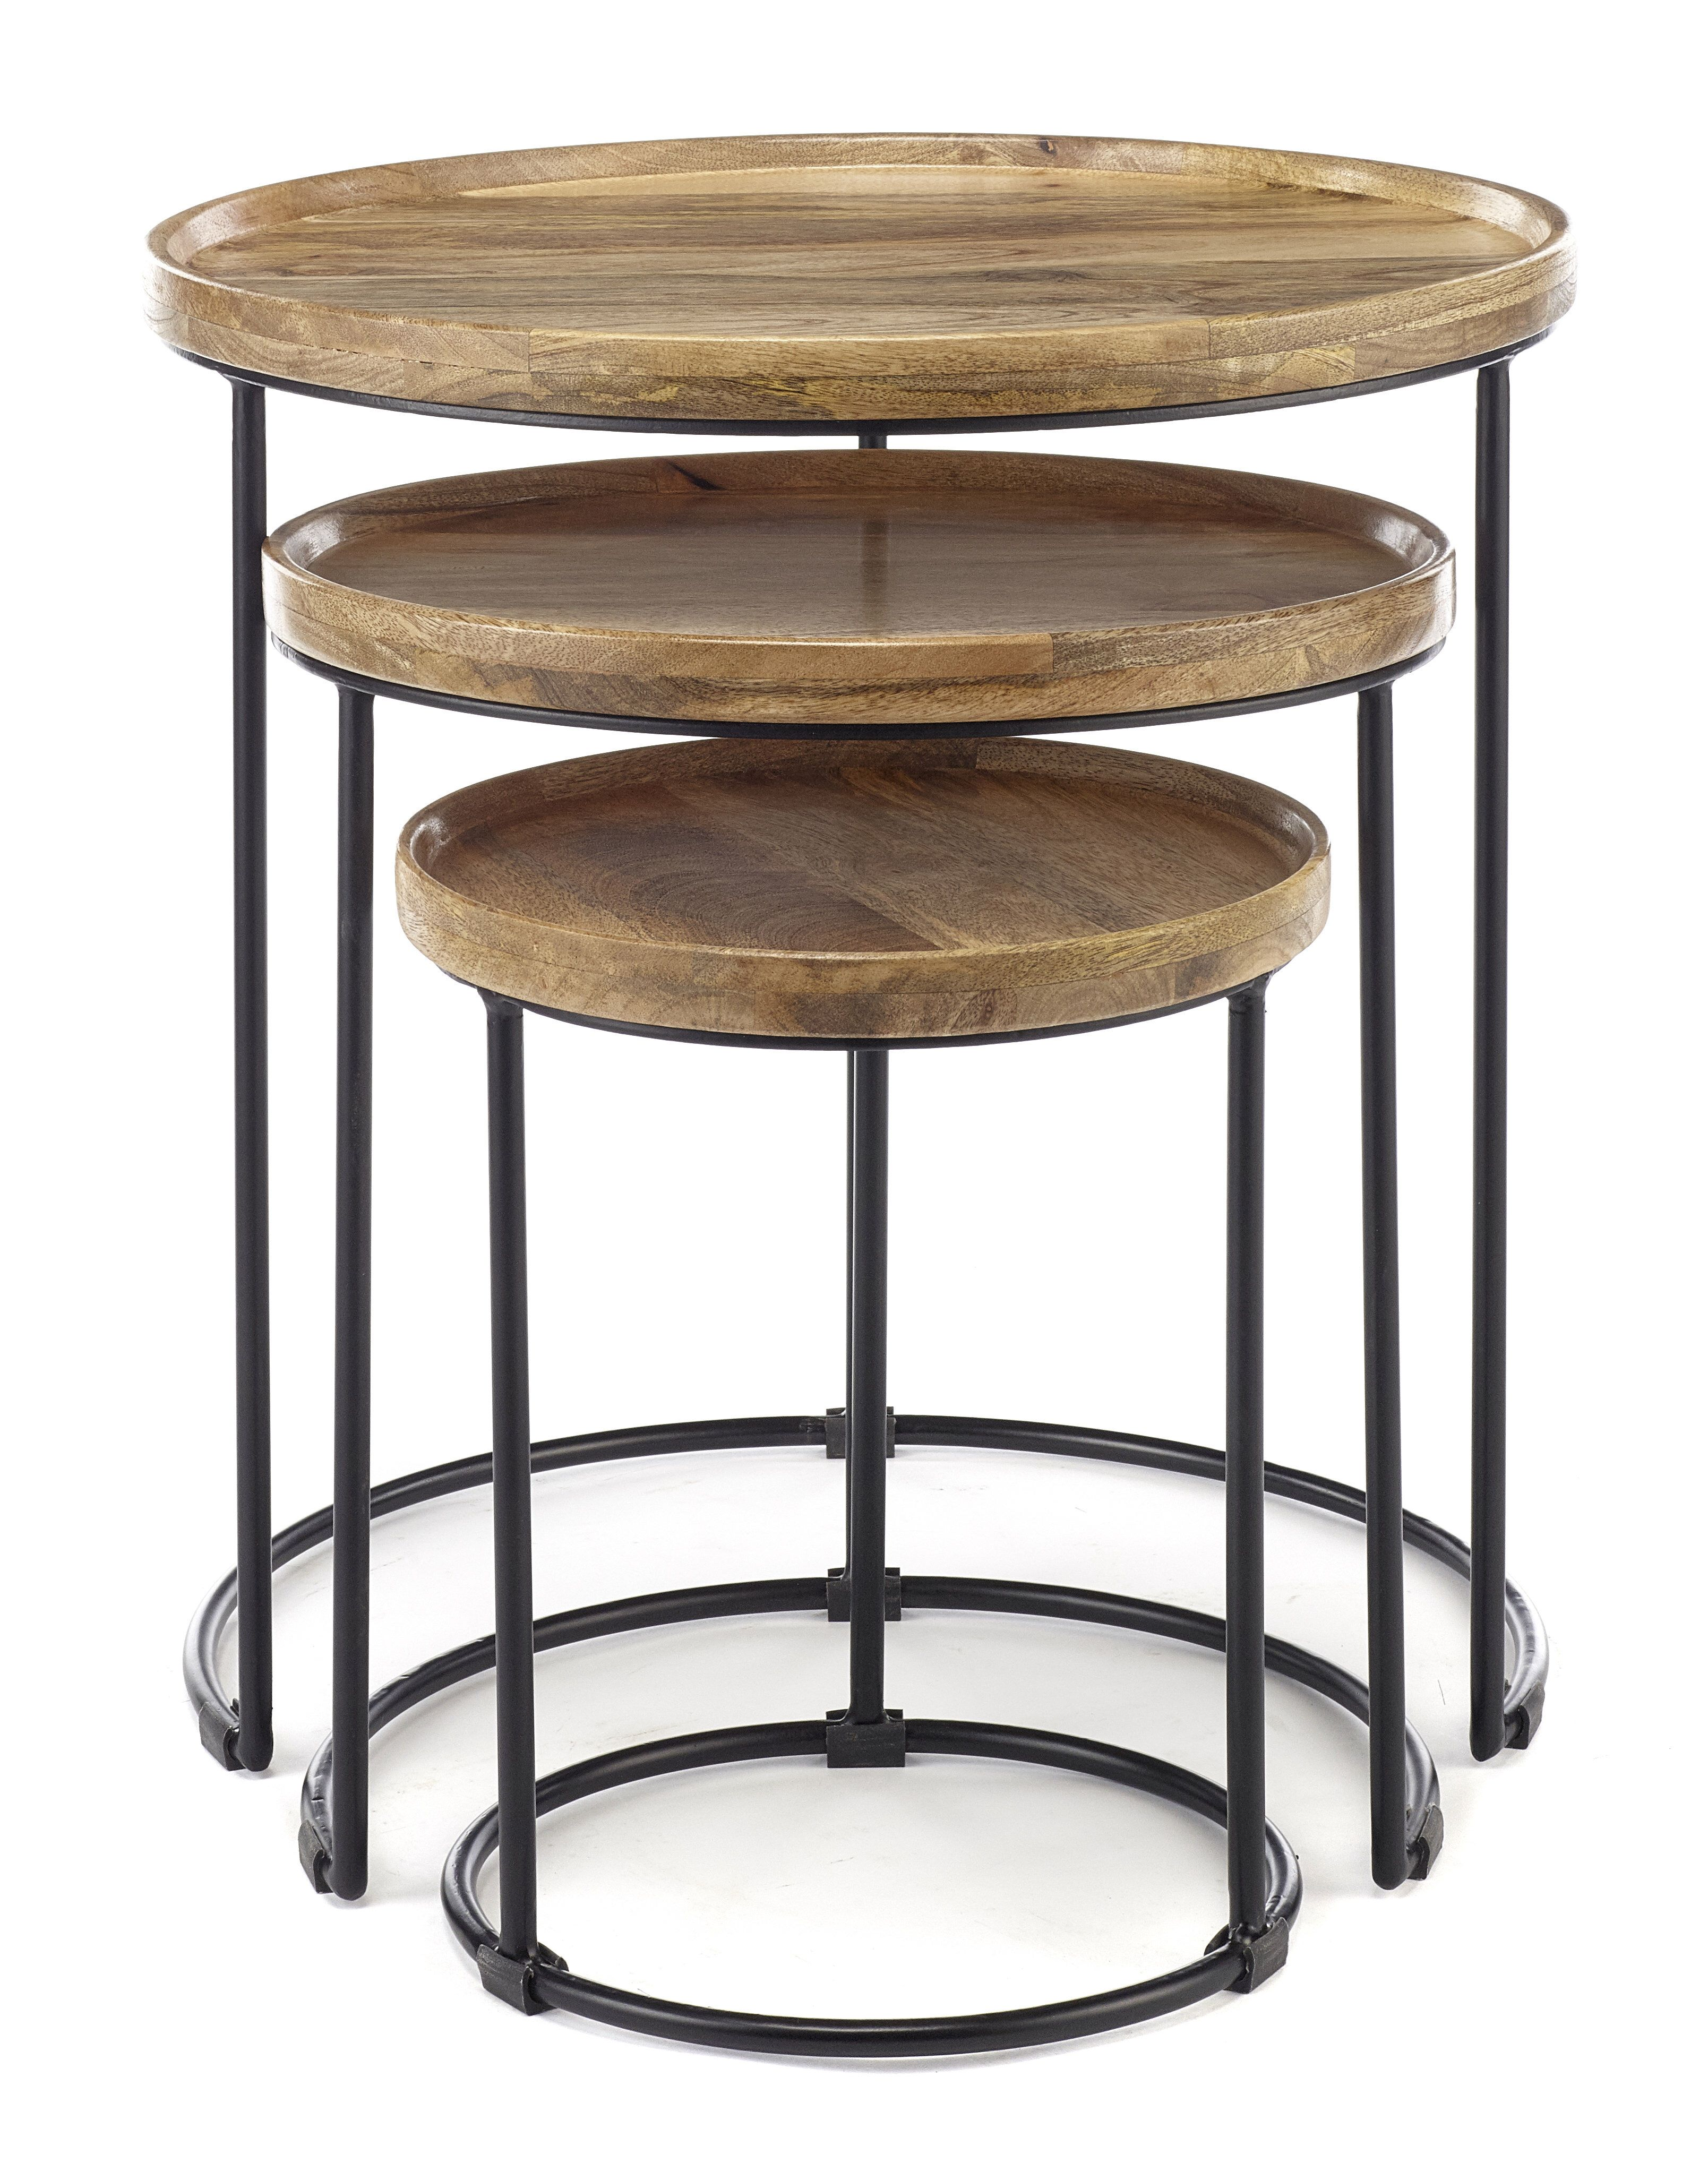 Alydar 3 Piece Nest Of Tables Side Table Side Table With Storage Table